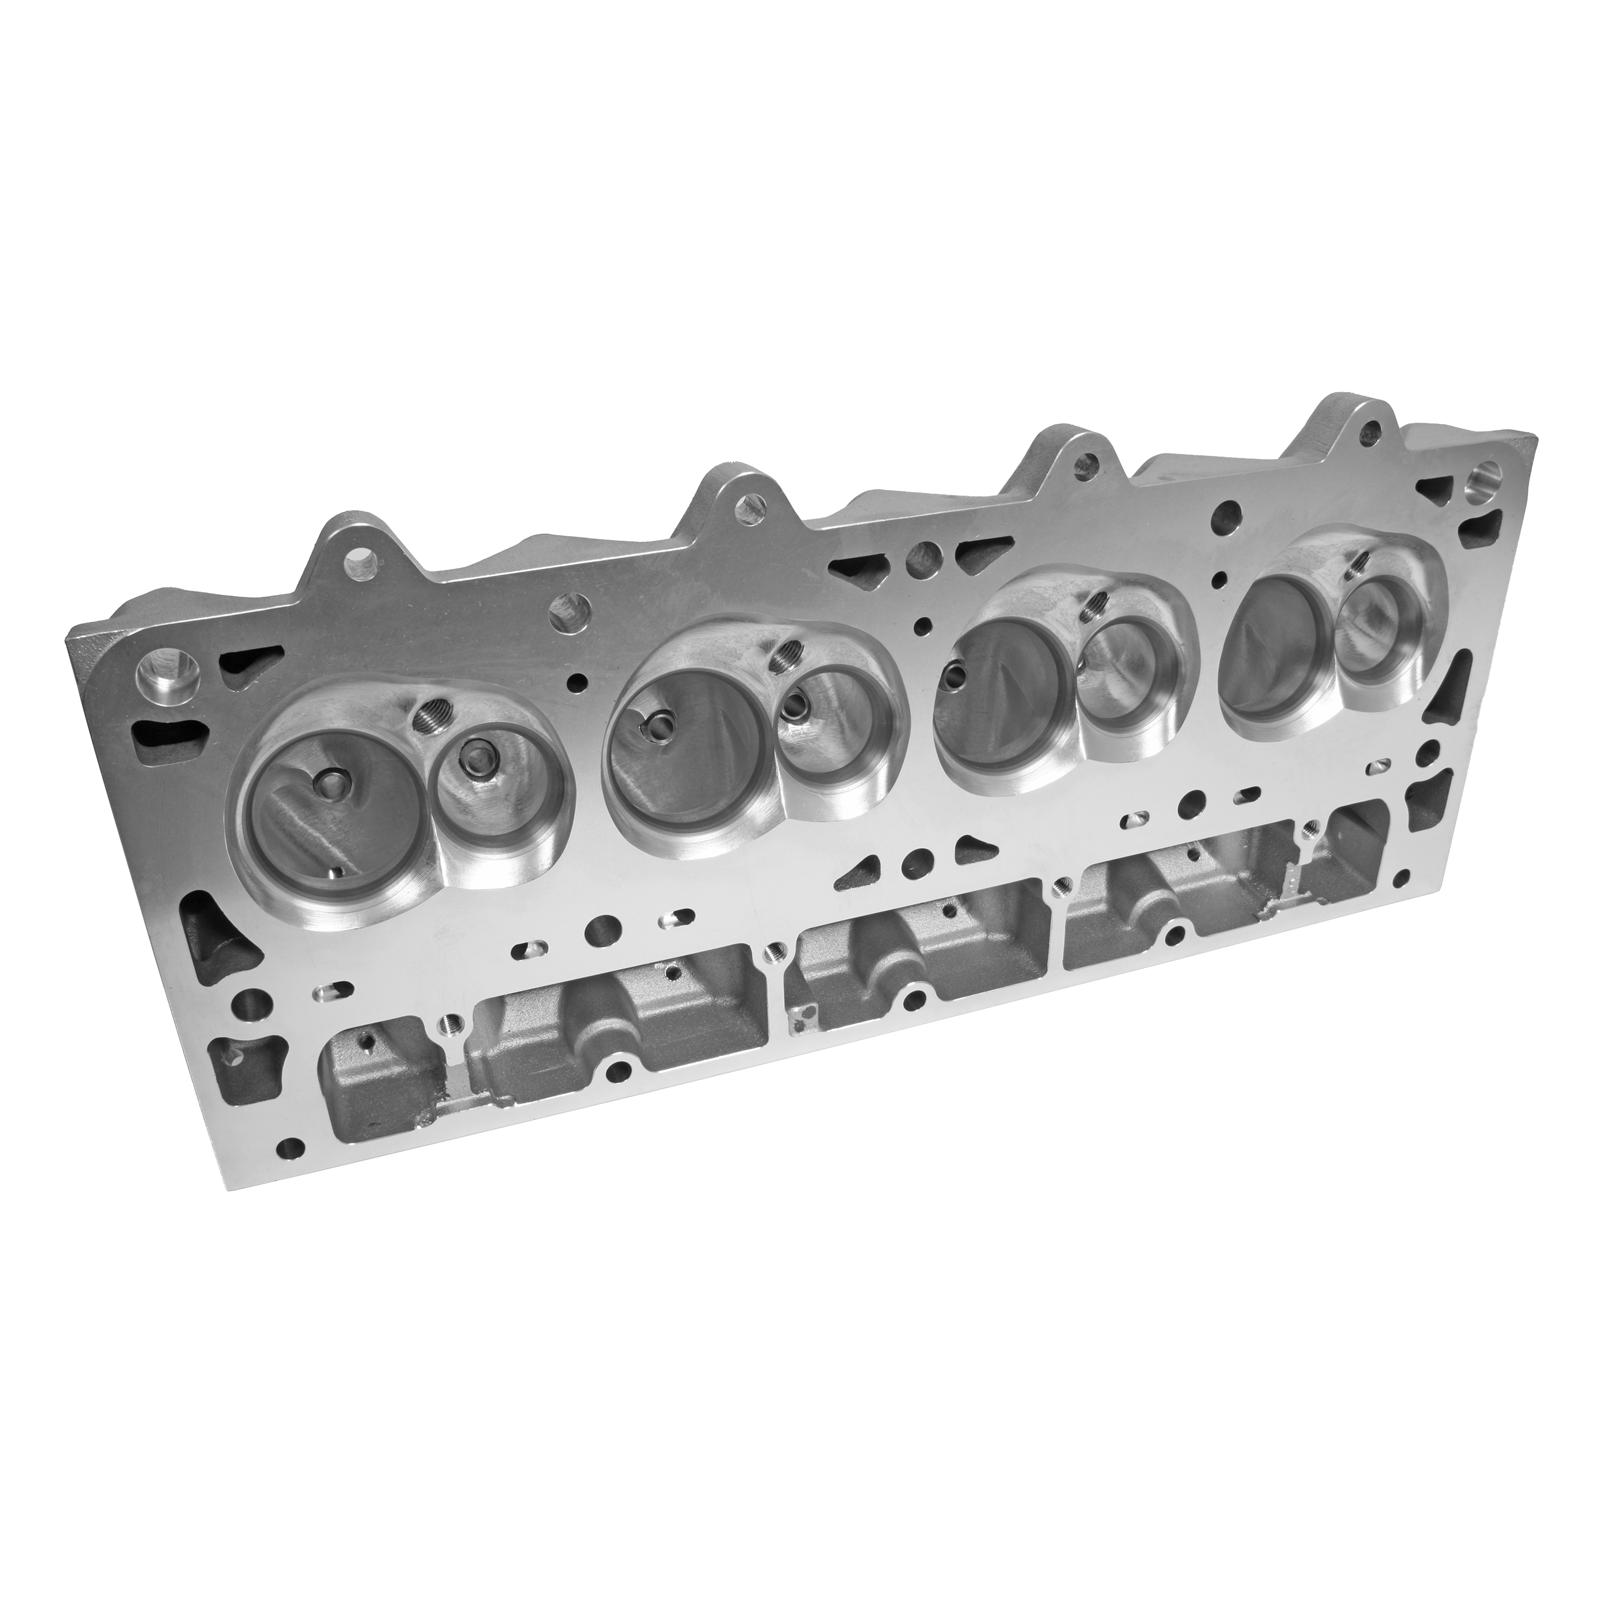 Trick Flow GenX 255 Cylinder Head For GM LS3 3261B003-C01